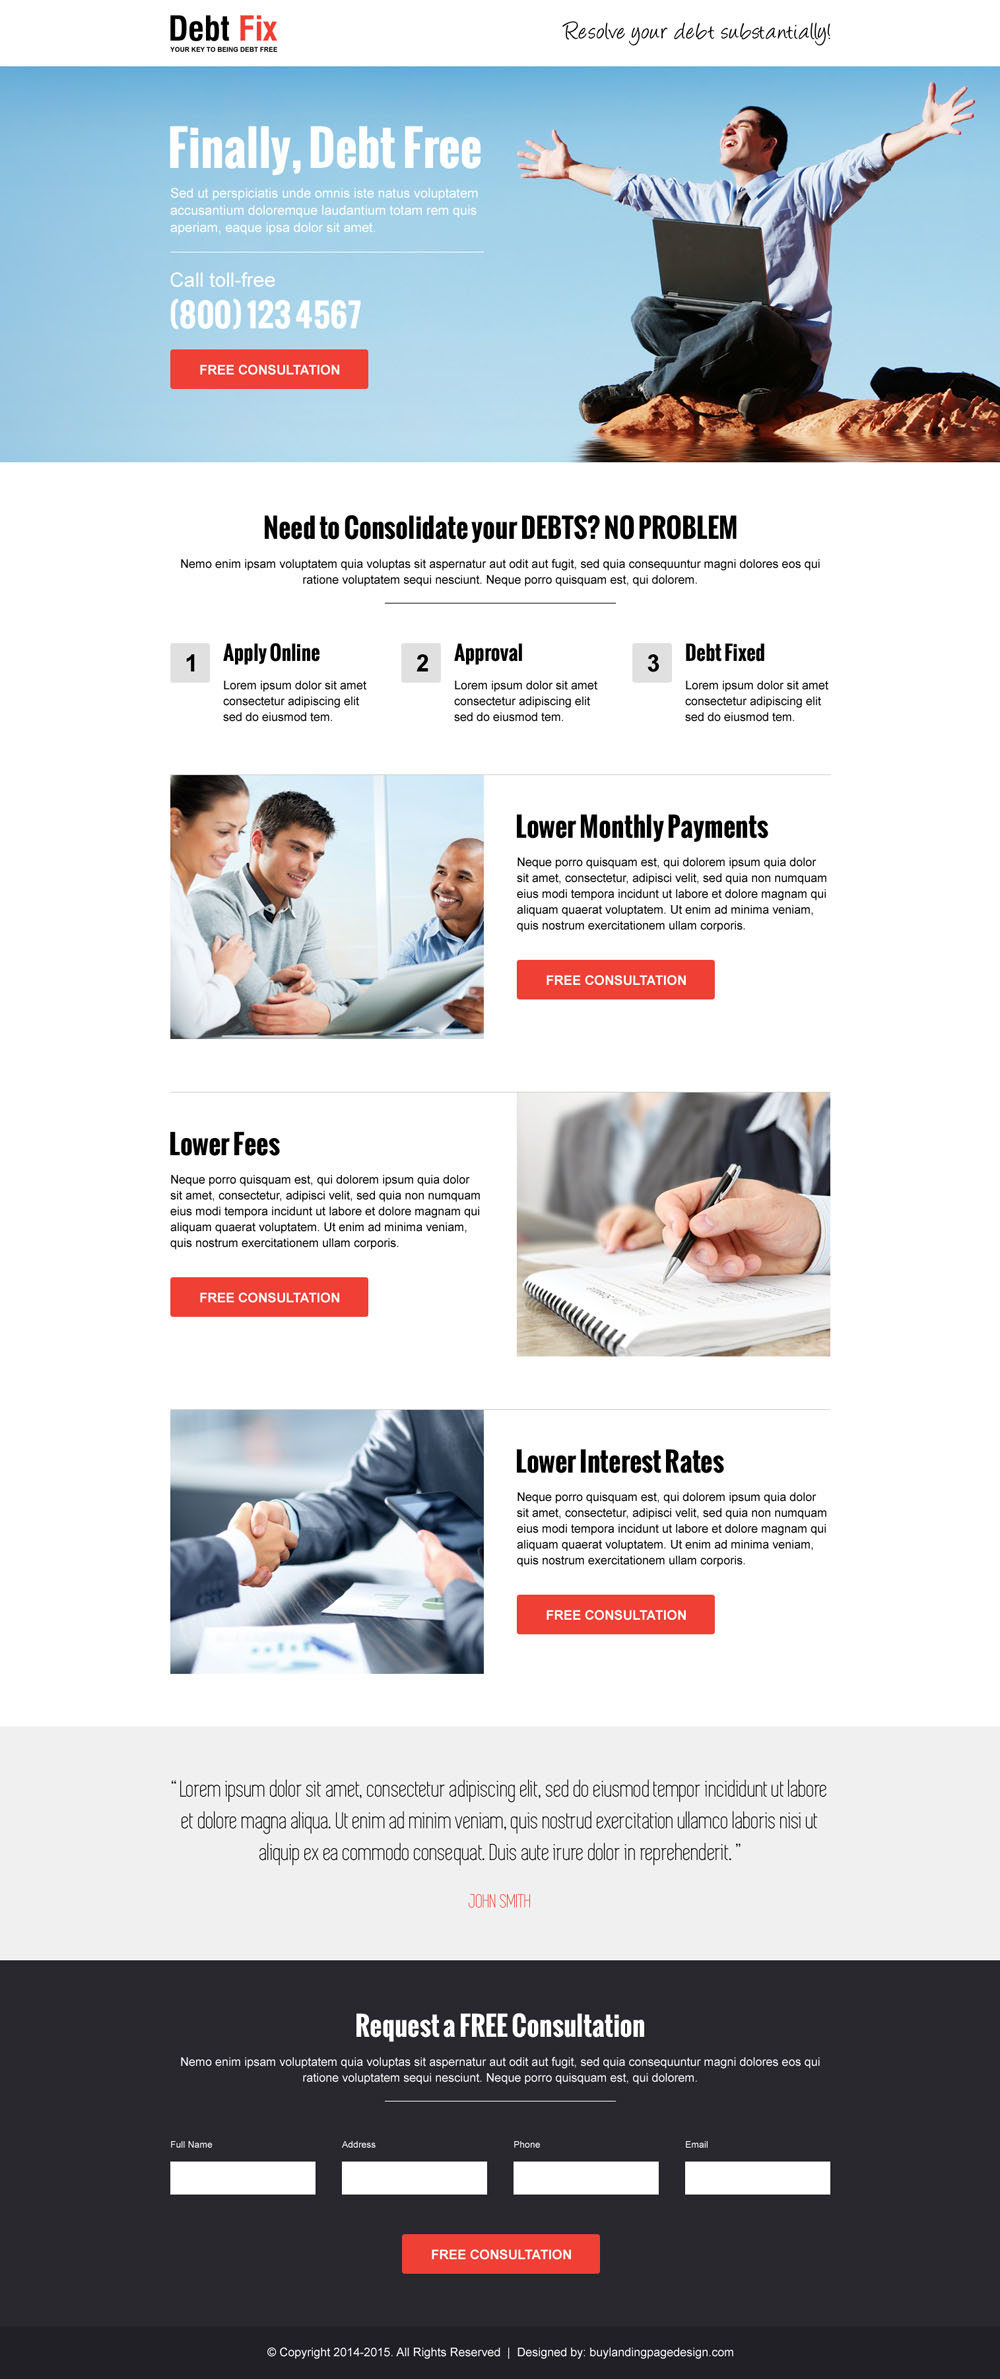 Purchase consolidate your debts call to action professional landing page design template from https://www.buylandingpagedesign.com/buy/consolidate-your-debts-call-to-action-professional-landing-page-design/1400